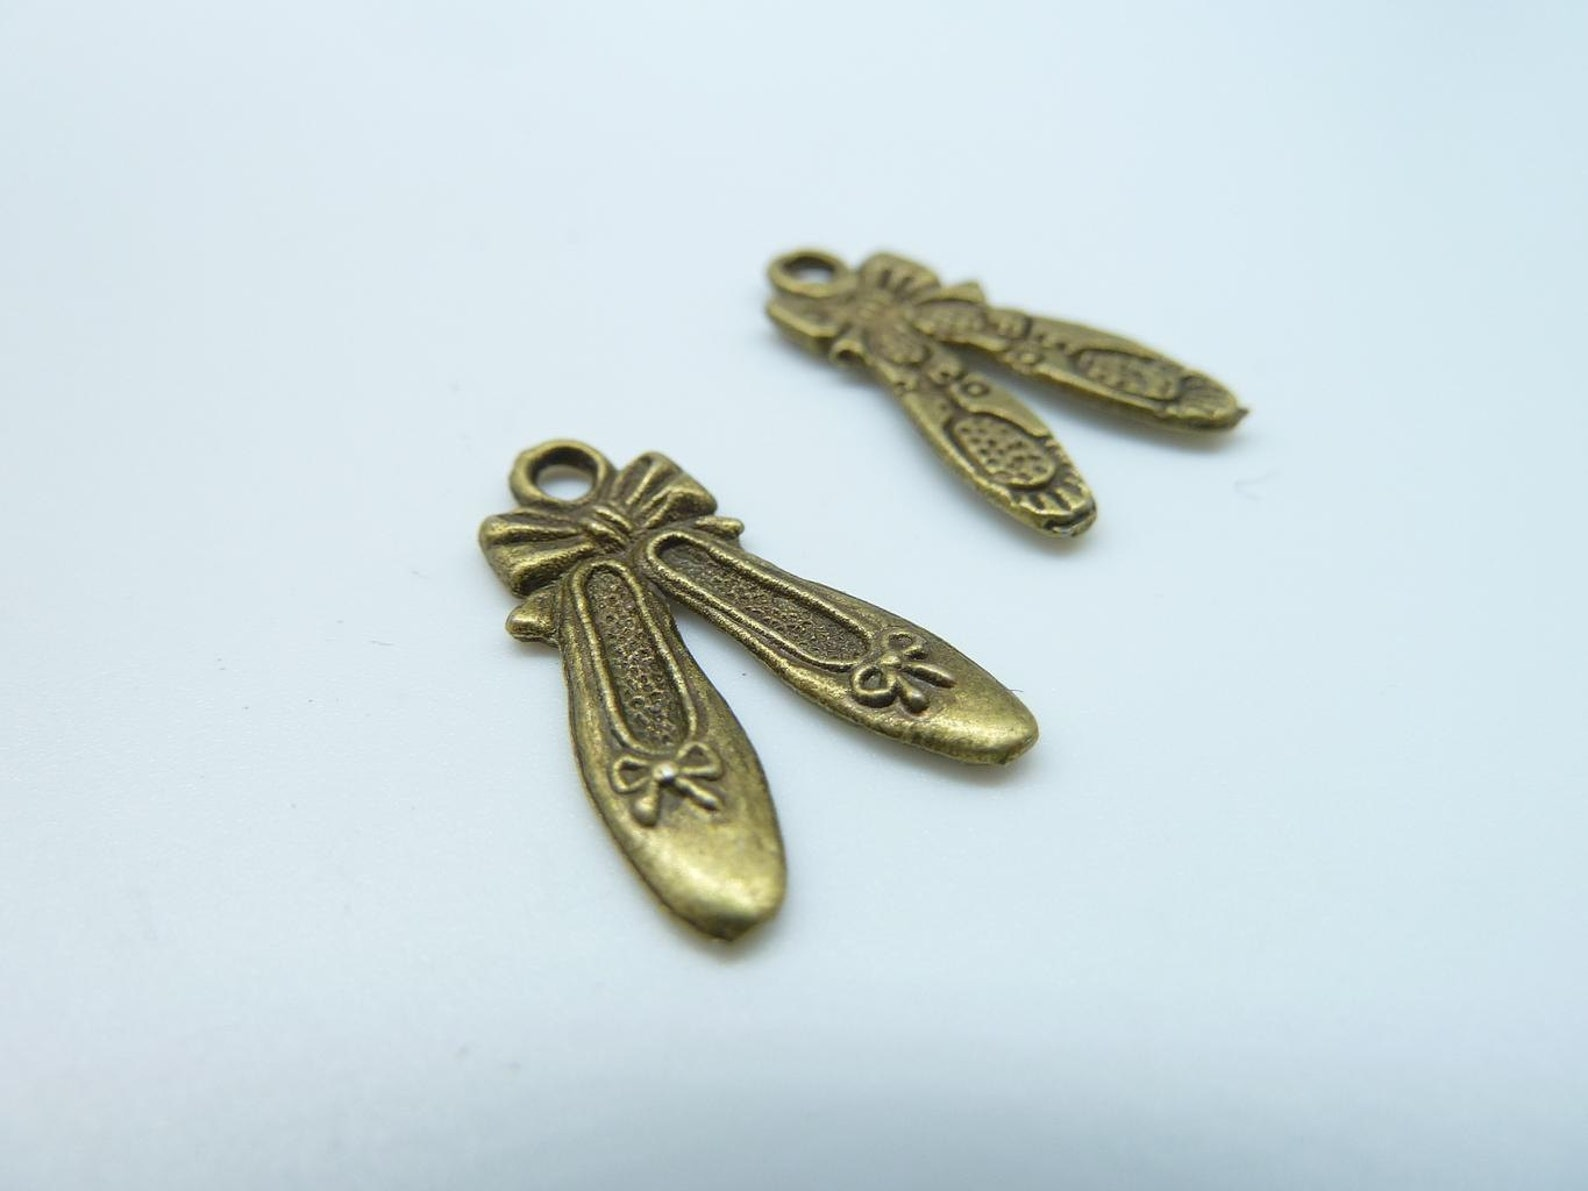 20pcs 12x20mm antique bronze mini embroidered shoes ballet slipper charms pendant c490